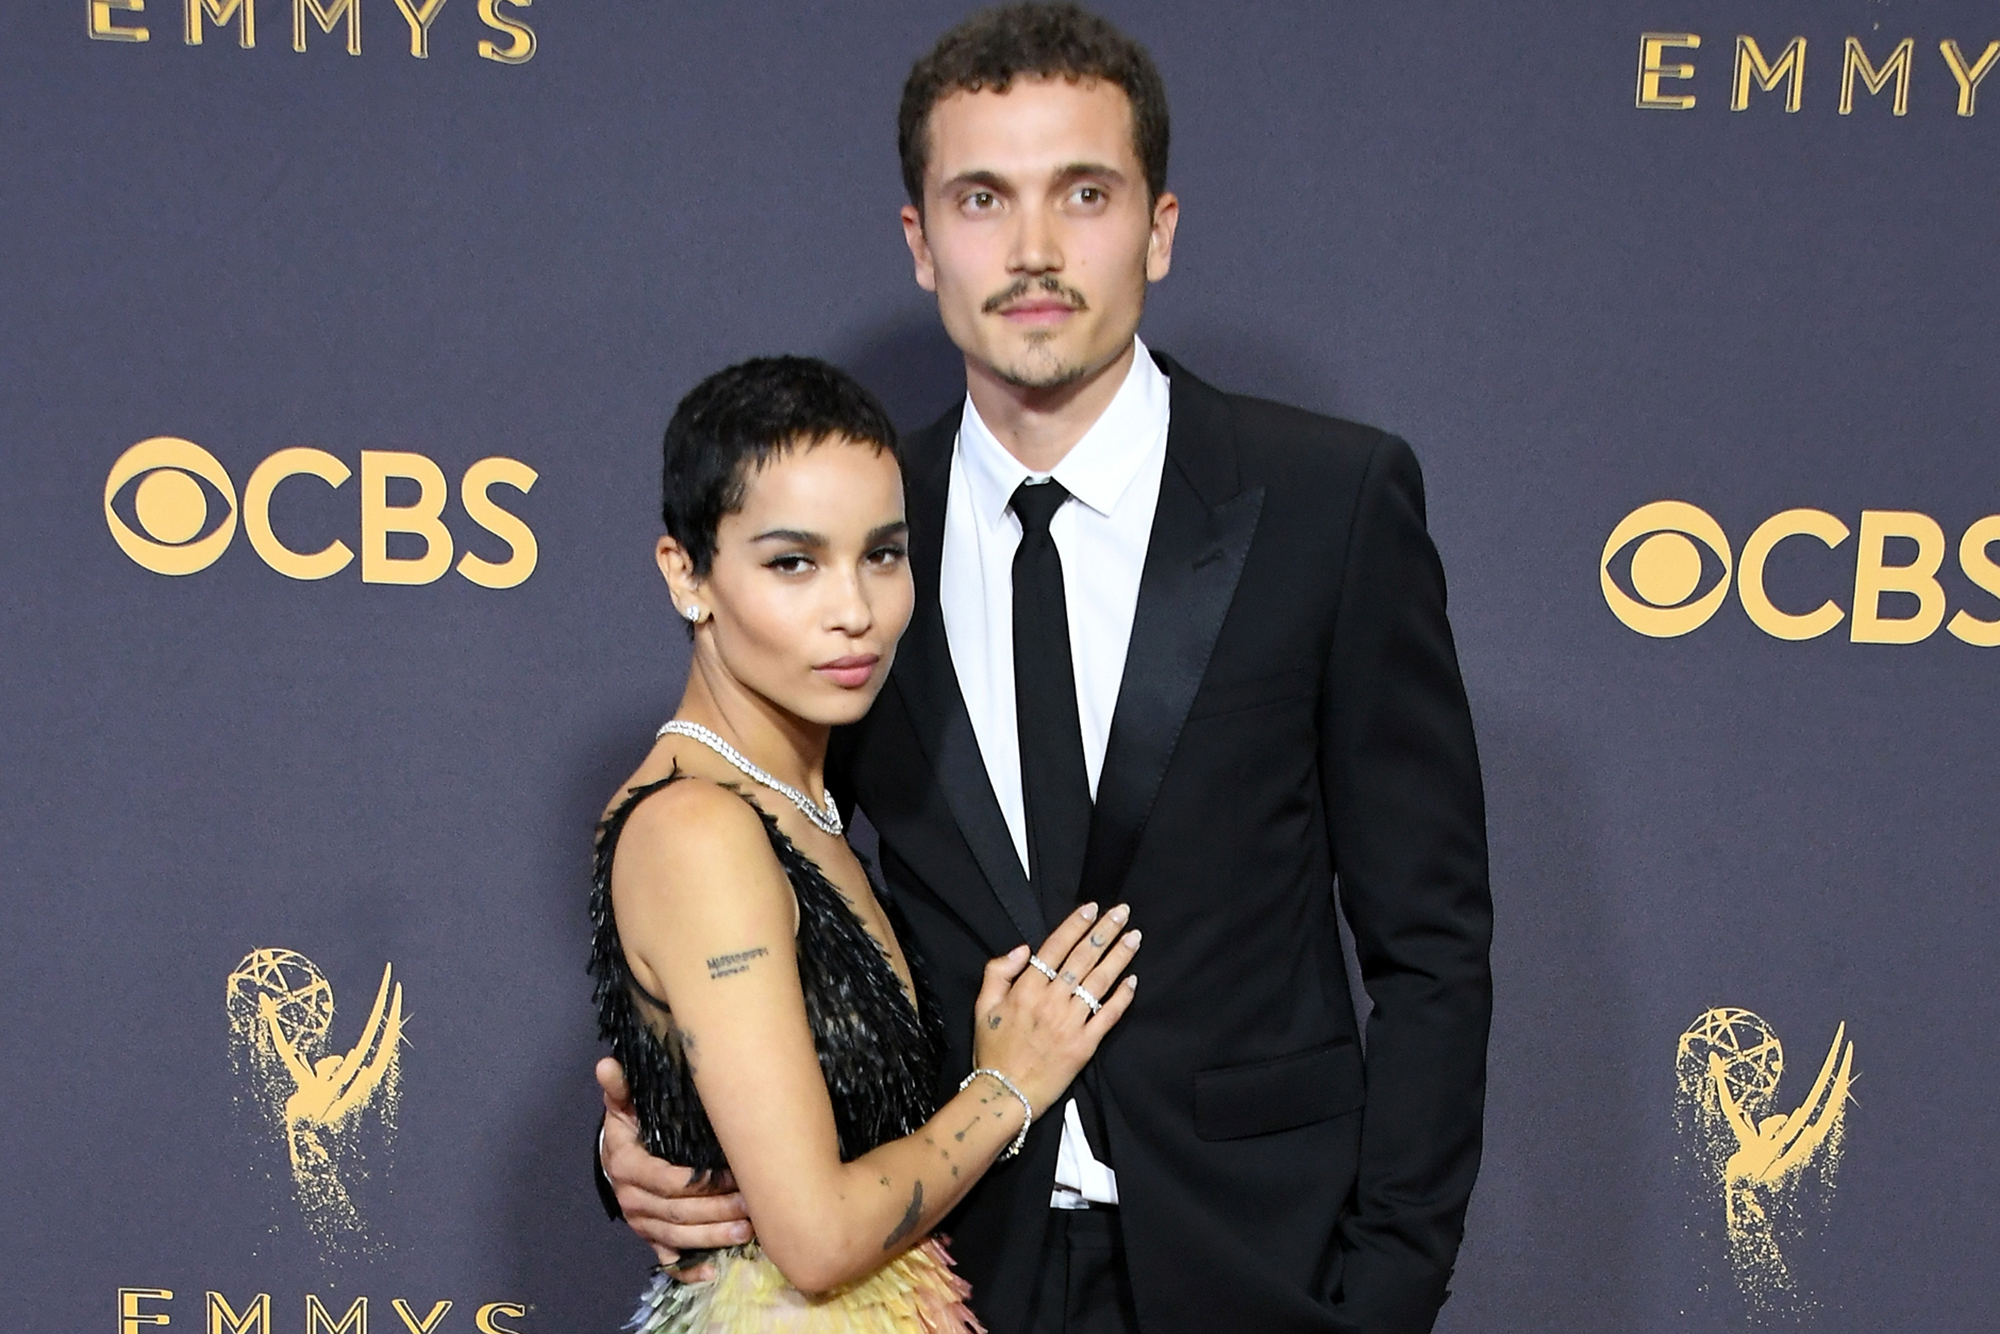 Zoë Kravitz shares cryptic message amid Karl Glusman divorce